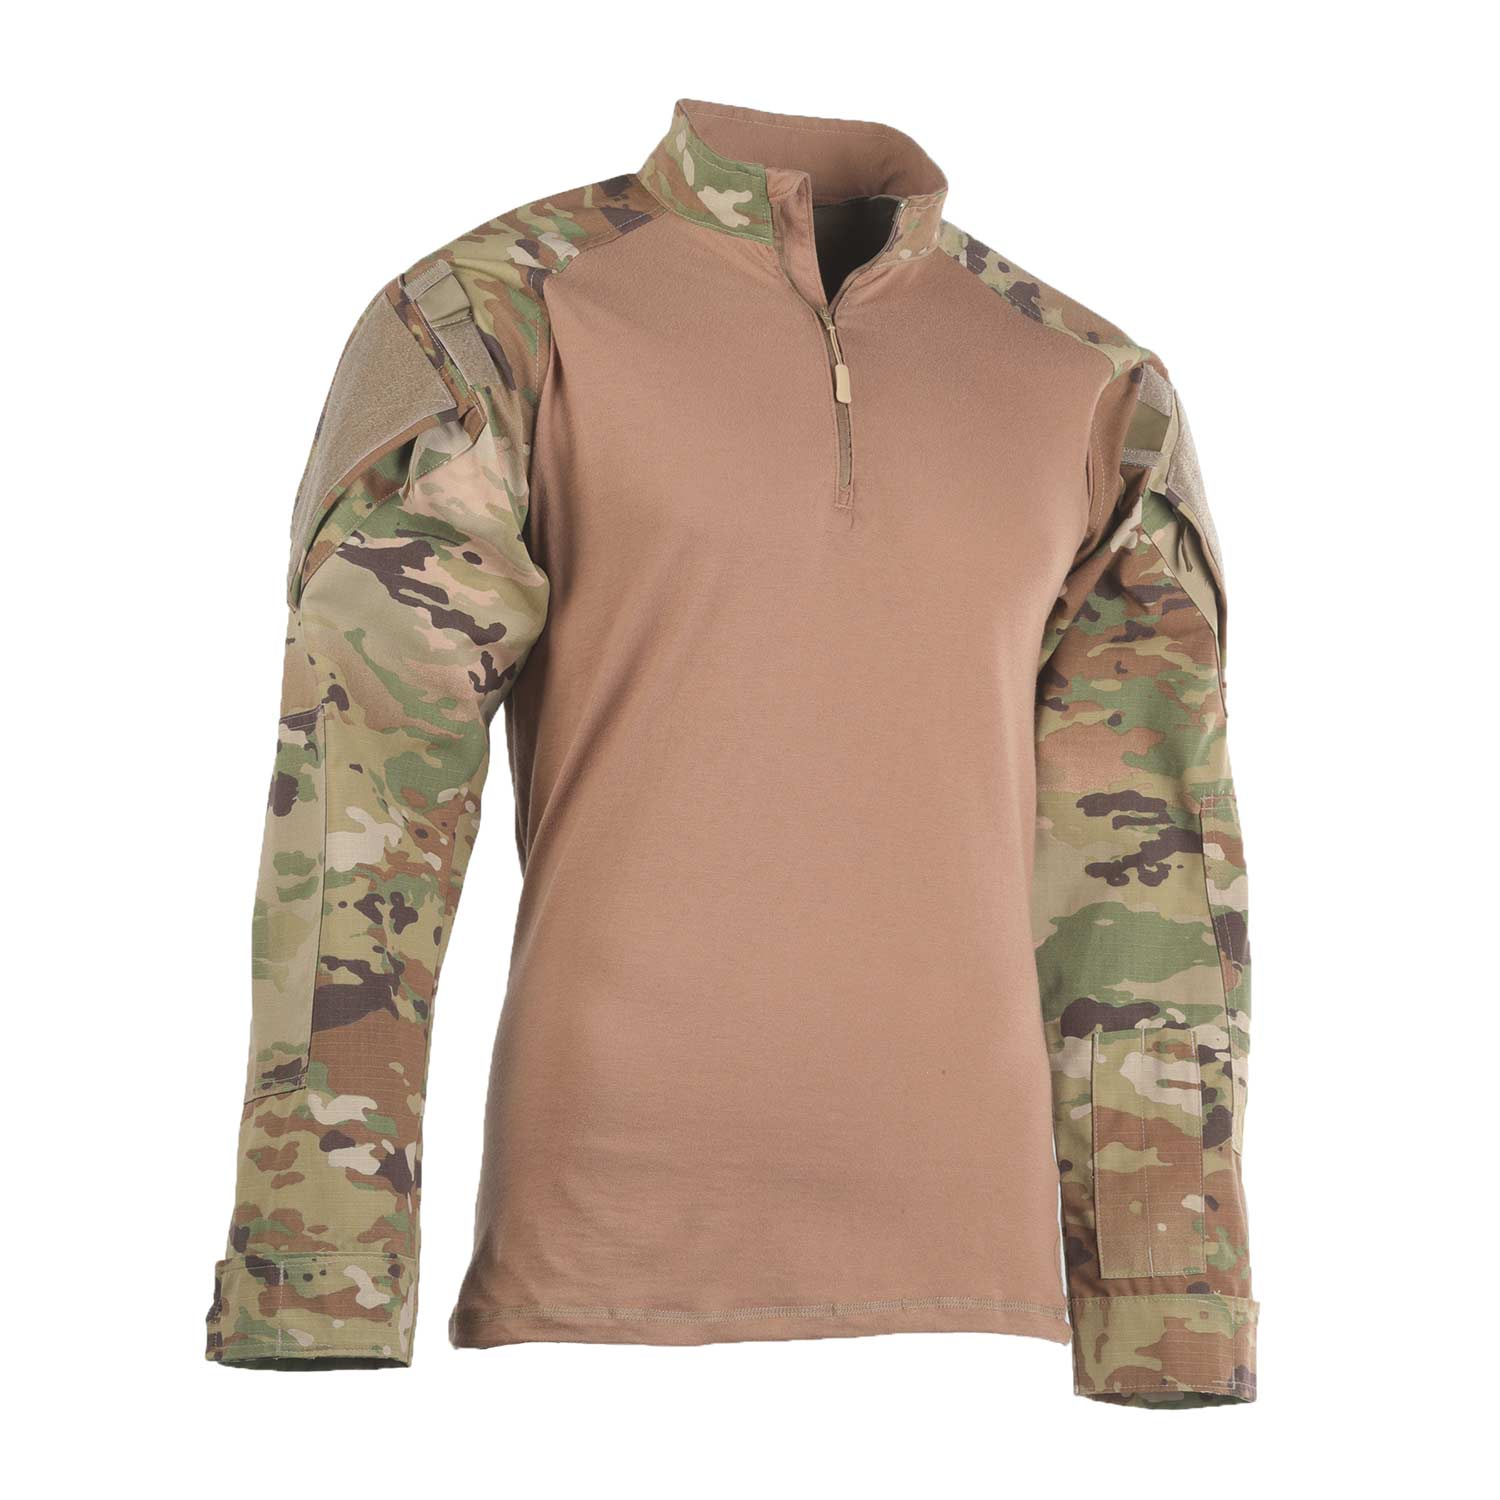 TRU-SPEC OCP Scorpion W2 1/4 Zip Combat Shirt